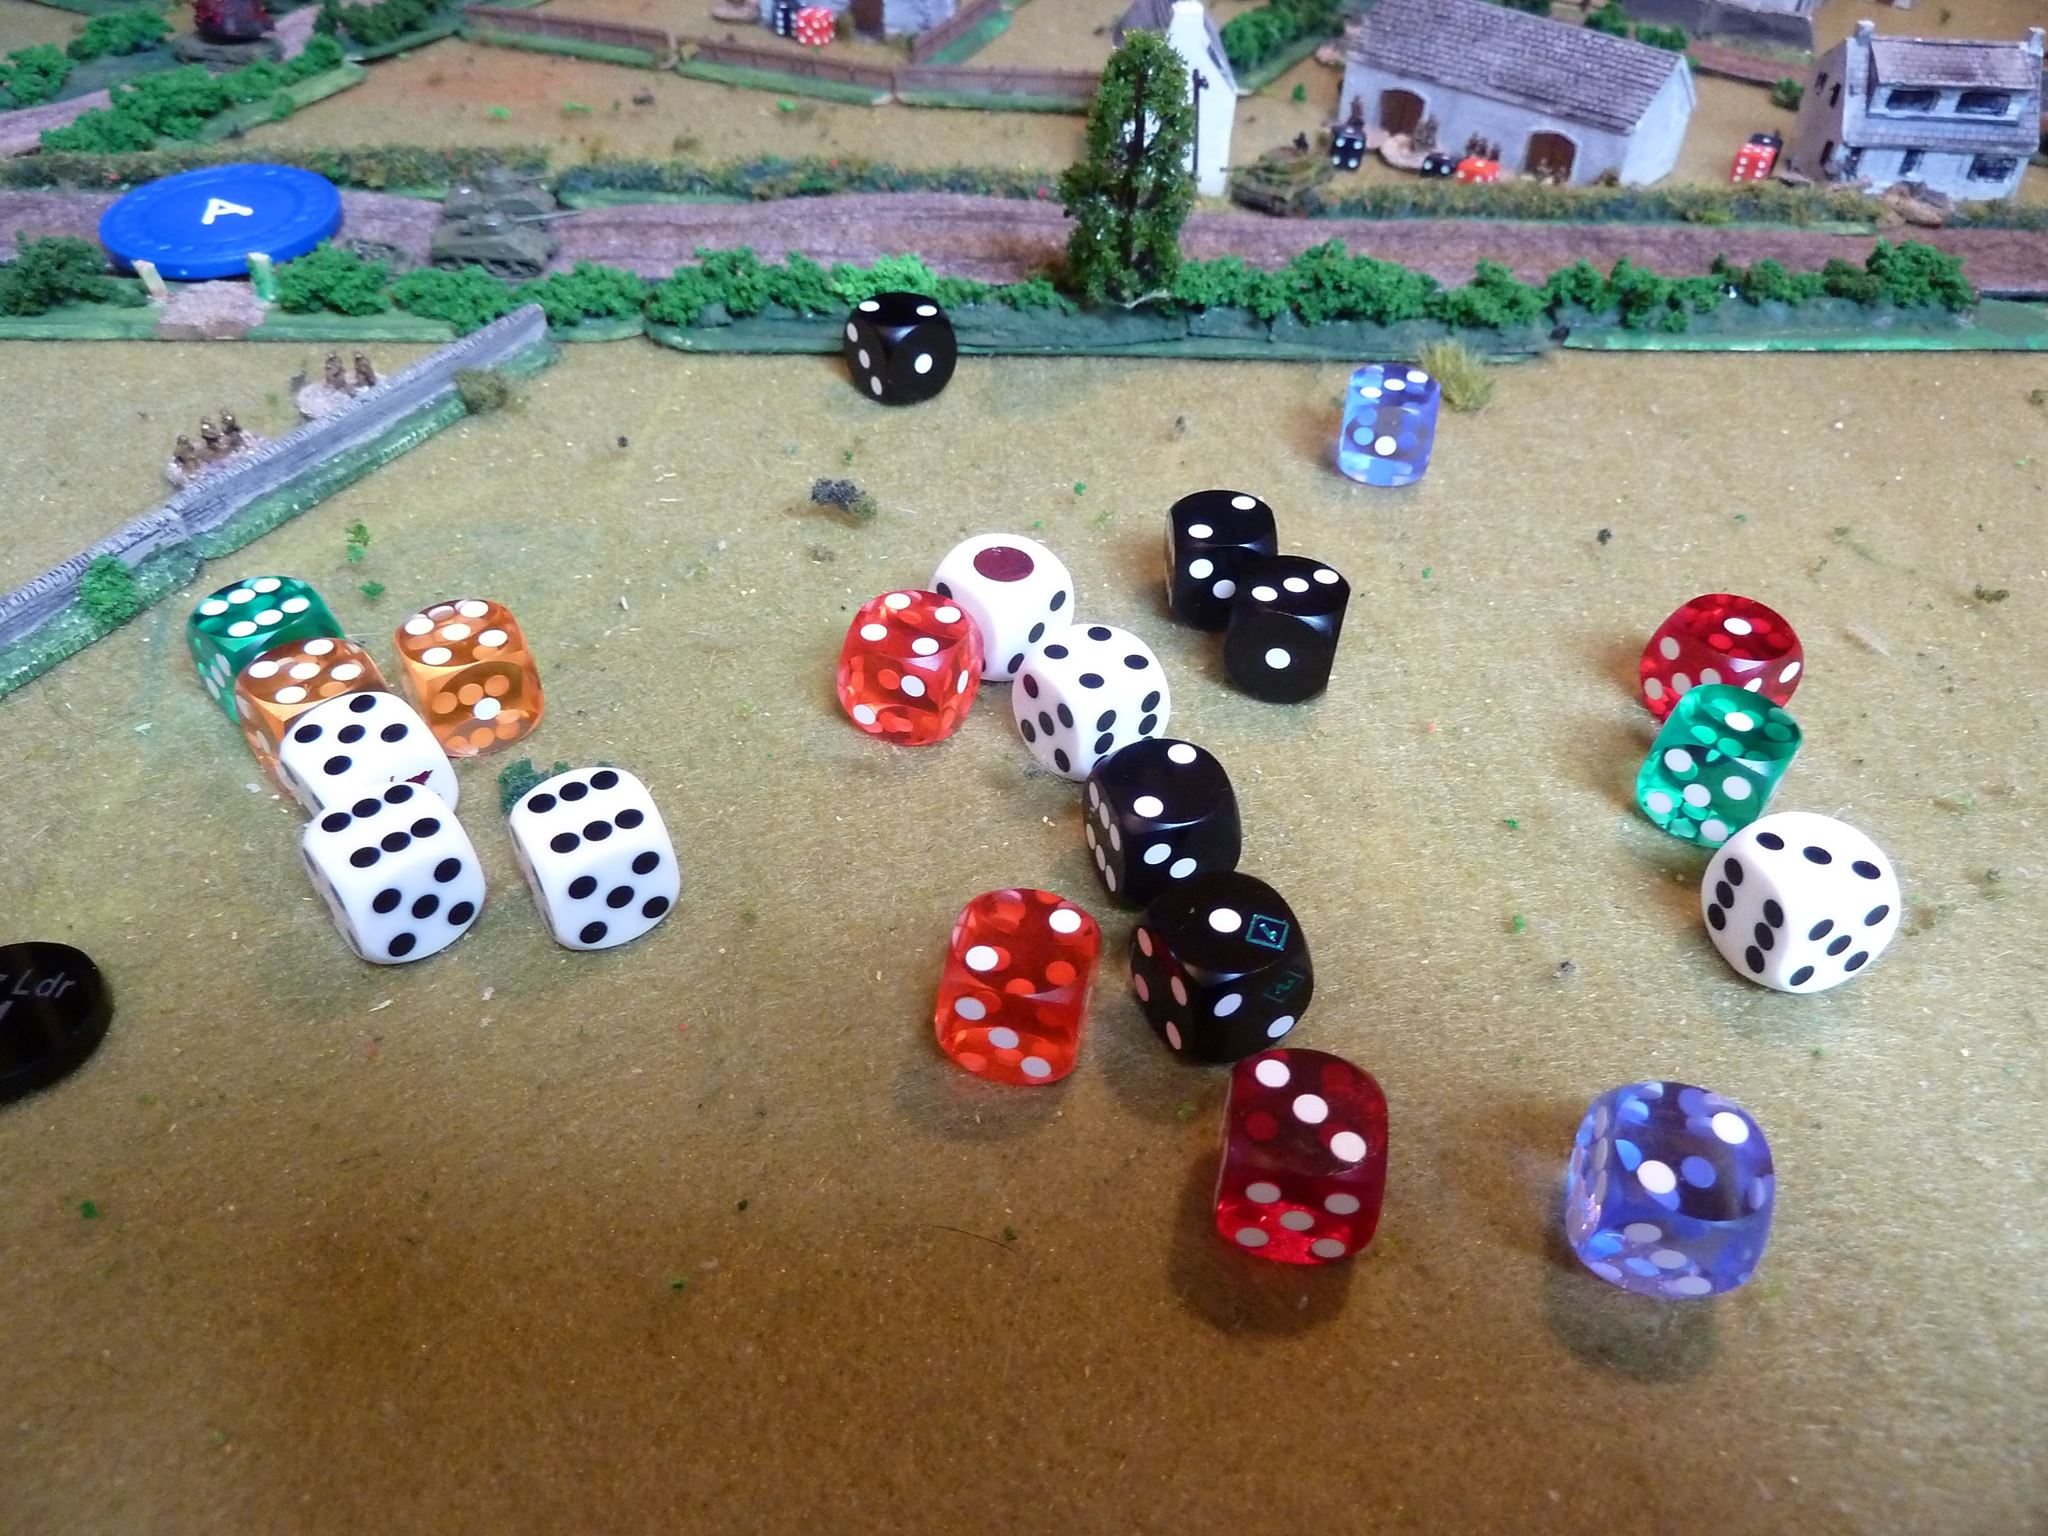 However, despite all those kill dice including three added for the critical hit, the Sherman survives with no effect!